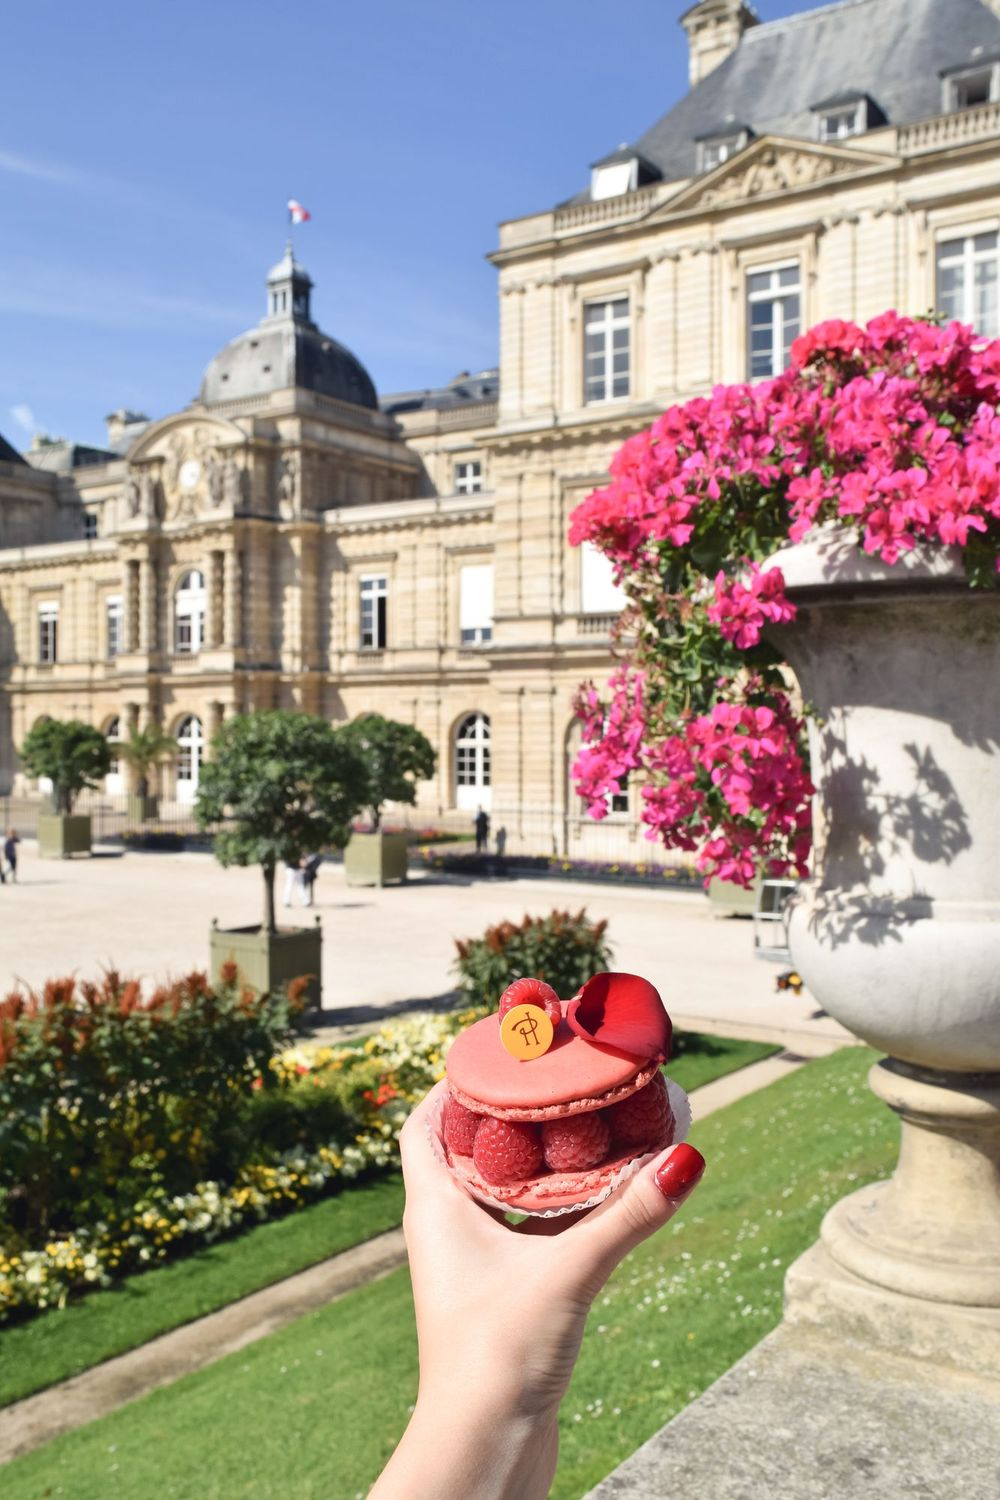 What to do and see in Saint-Germain-des-Prés: A Guide to the 6th Arrondissement of Paris, Jardin du Luxembourg